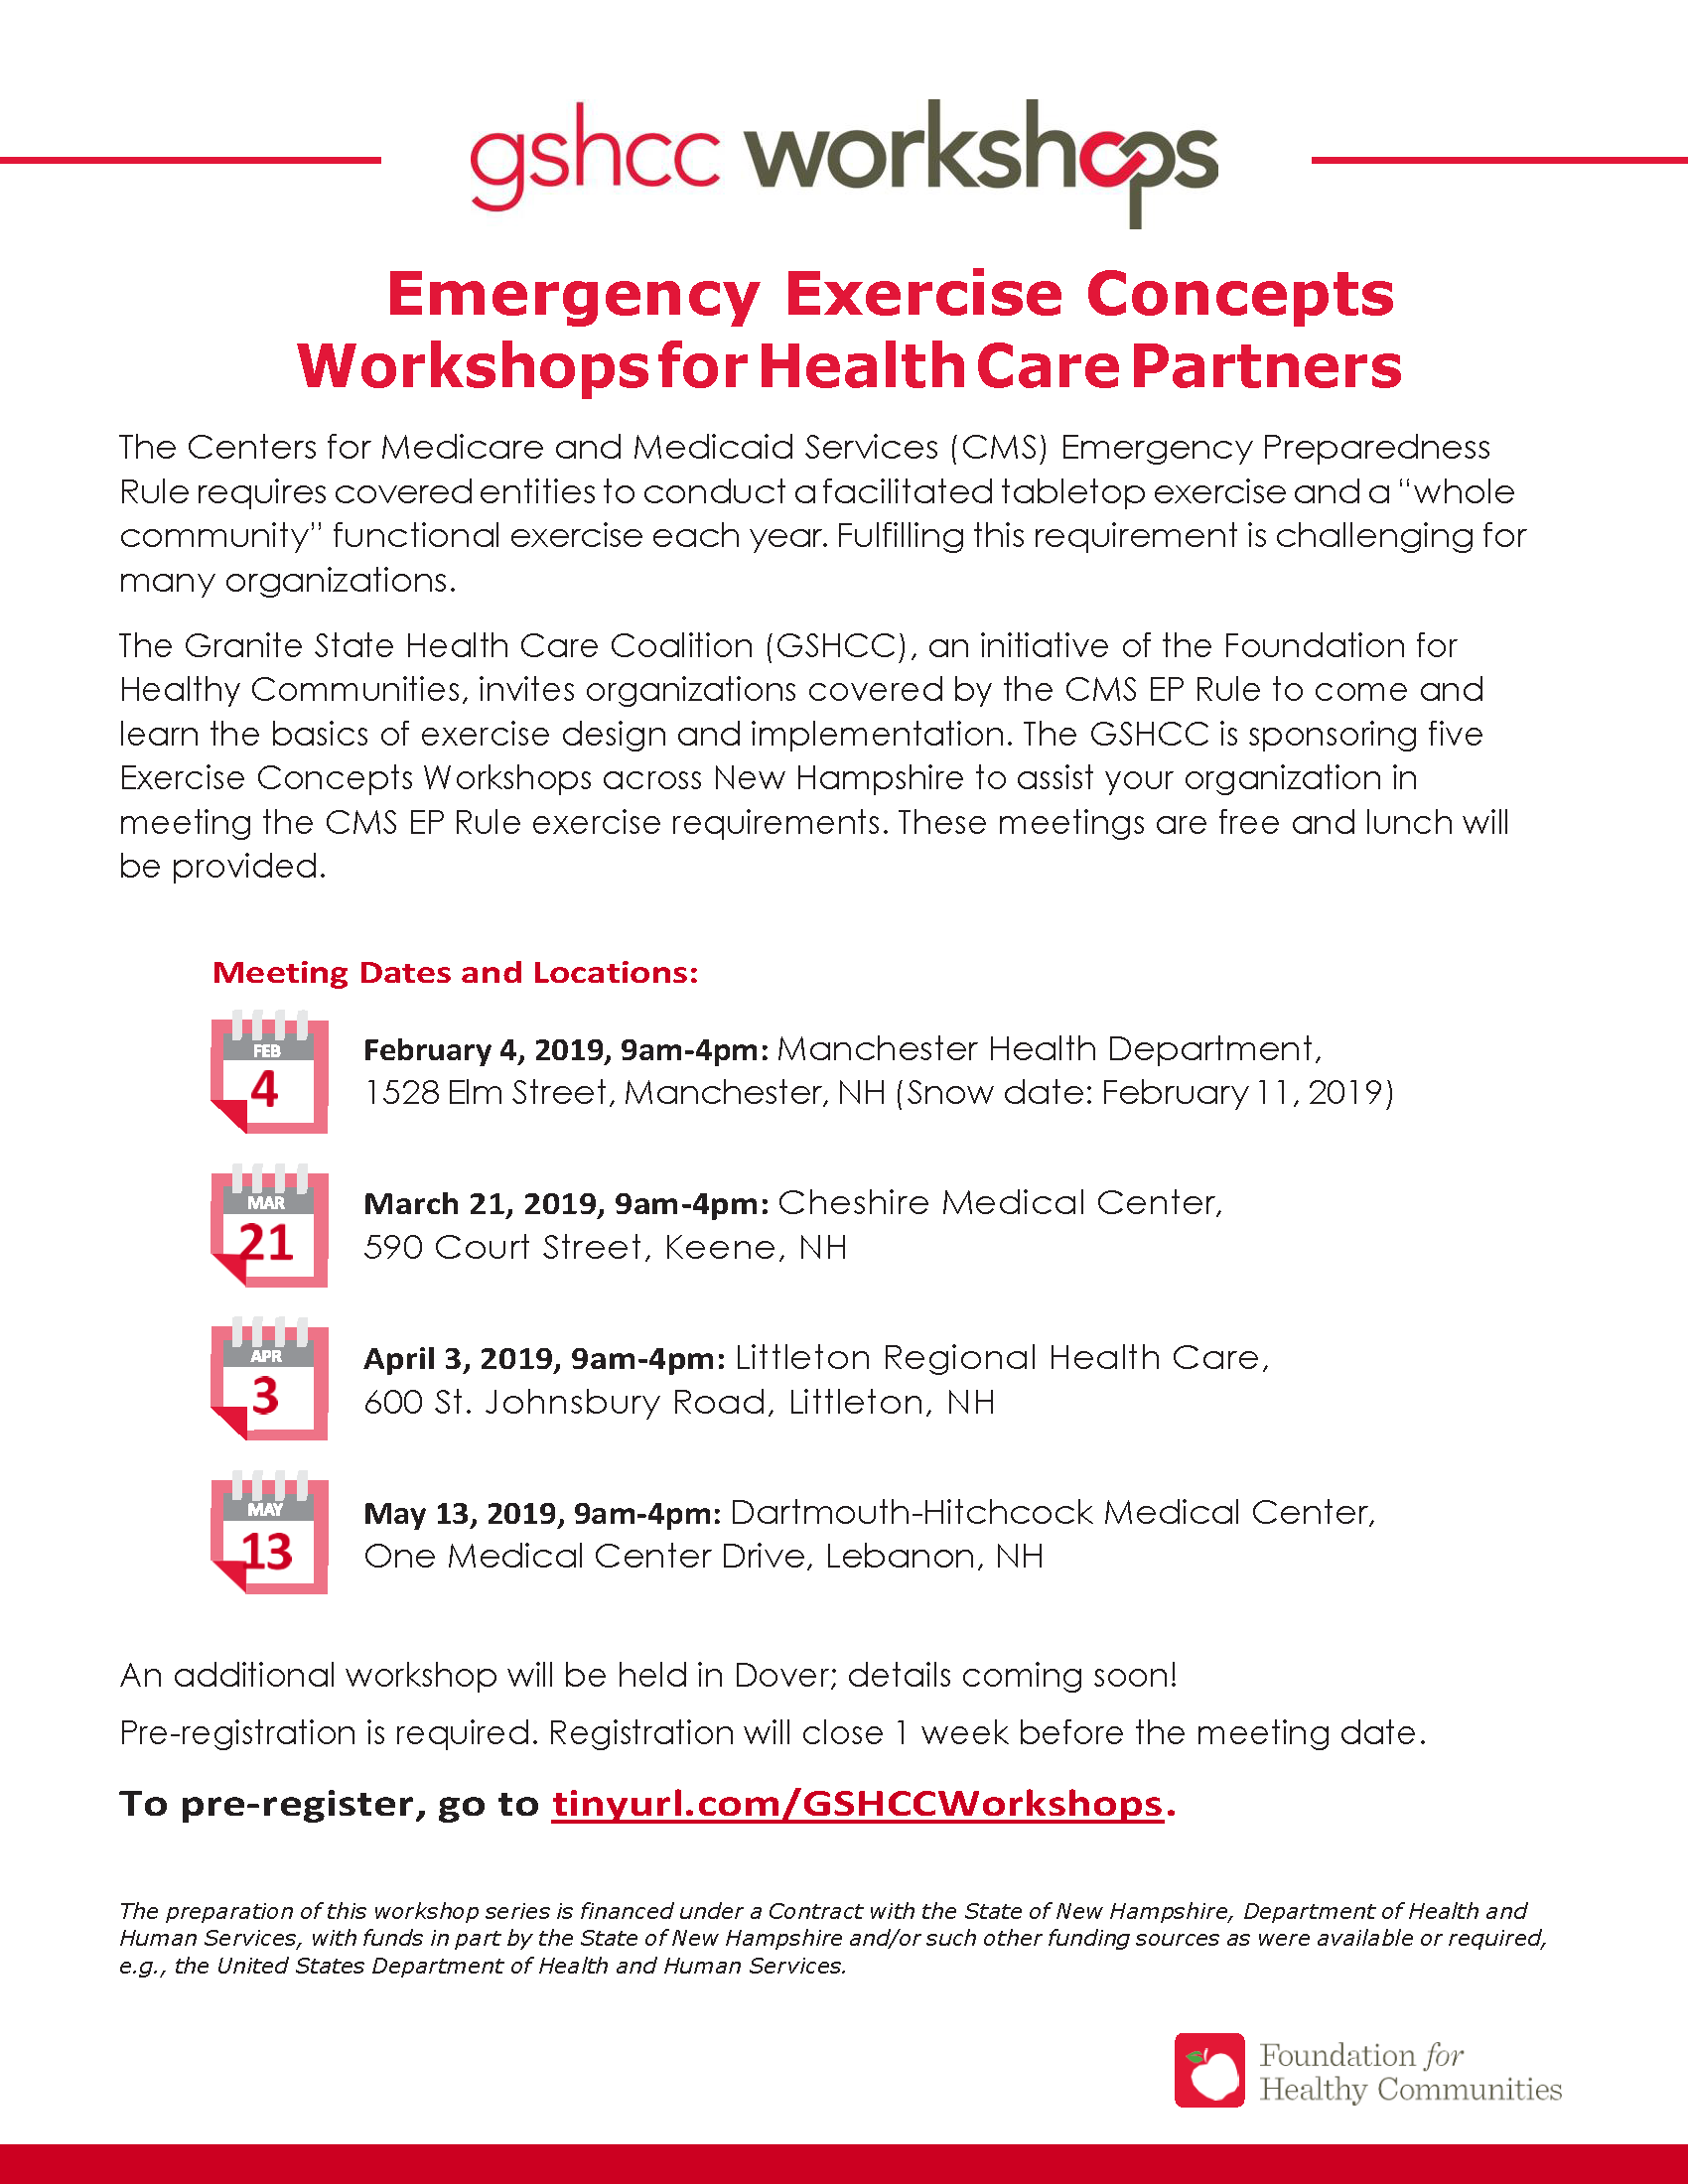 GSHCC Exercise Concepts Workshops